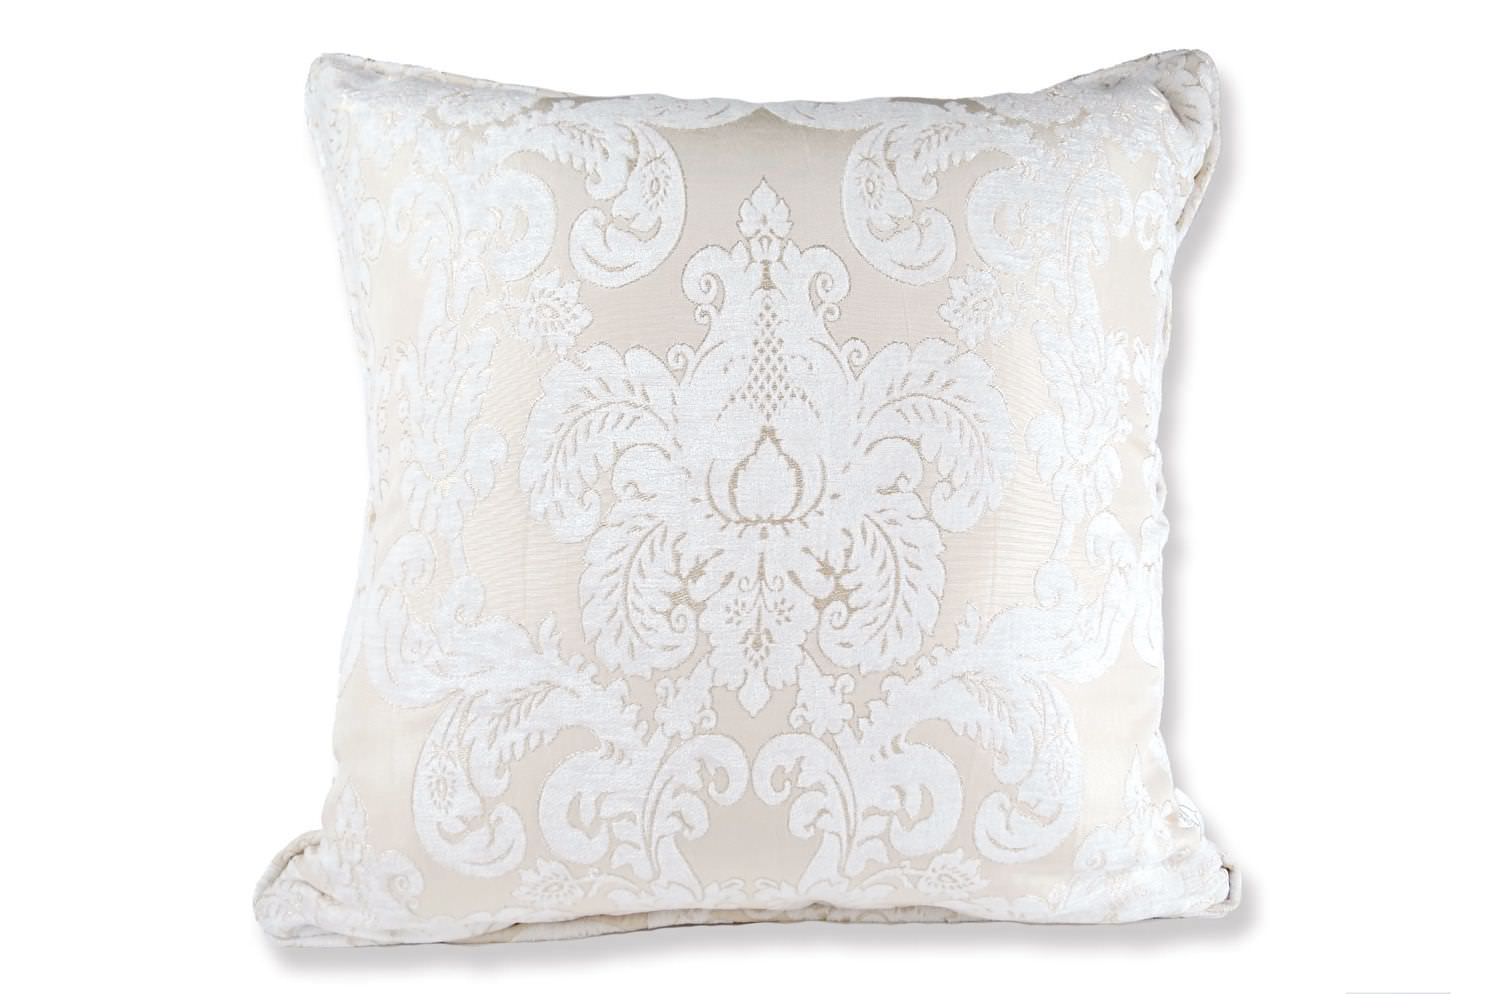 The Pearl White Damask ダマスク柄クッションカバー パールホワイト 50×50cm